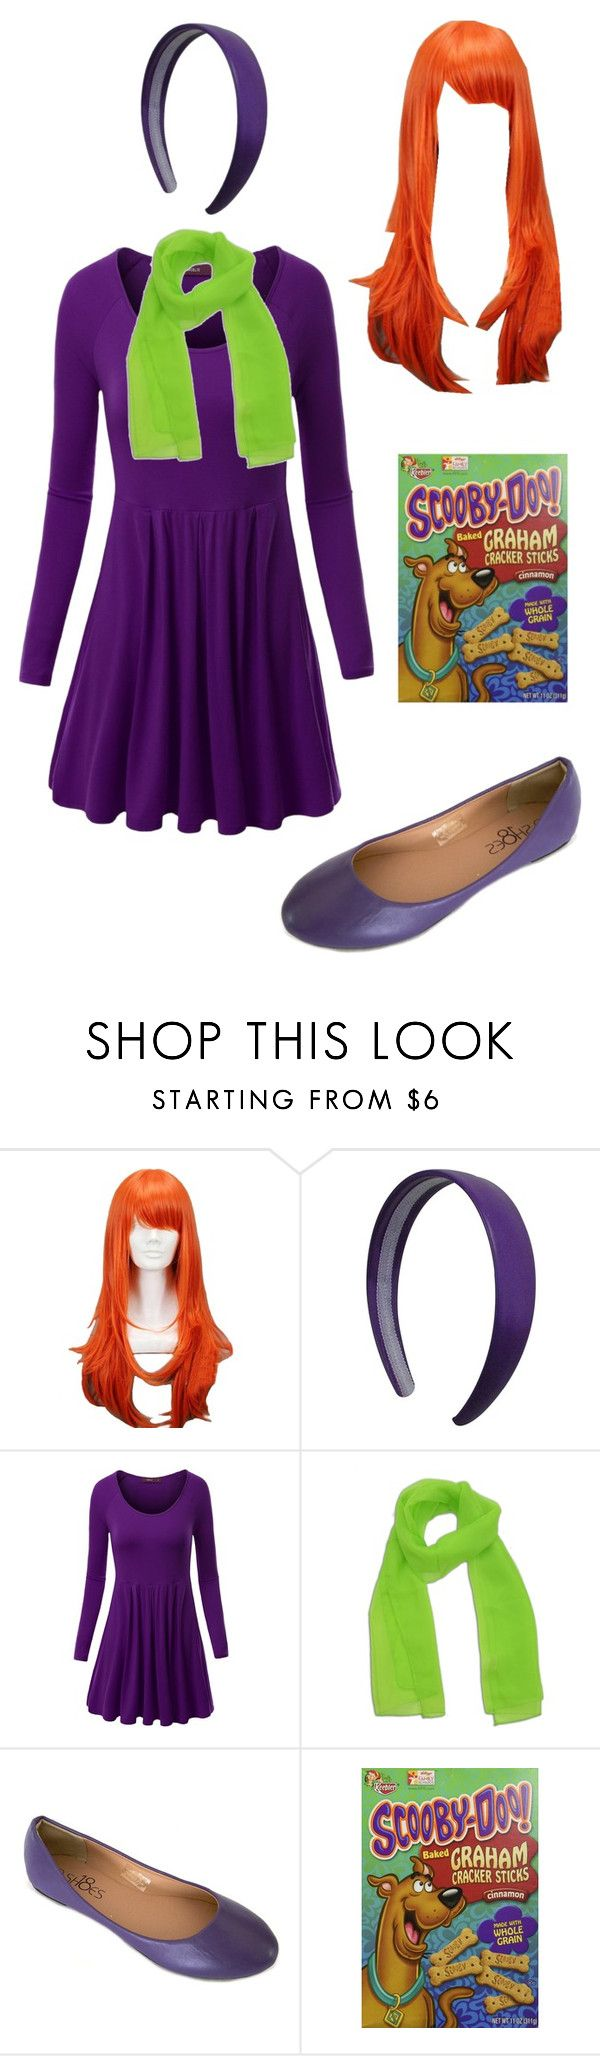 """Daphne Halloween Costume"" by itsafabulouslife ❤ liked on Polyvore featuring Doublju                                                                                                                                                                                 More"